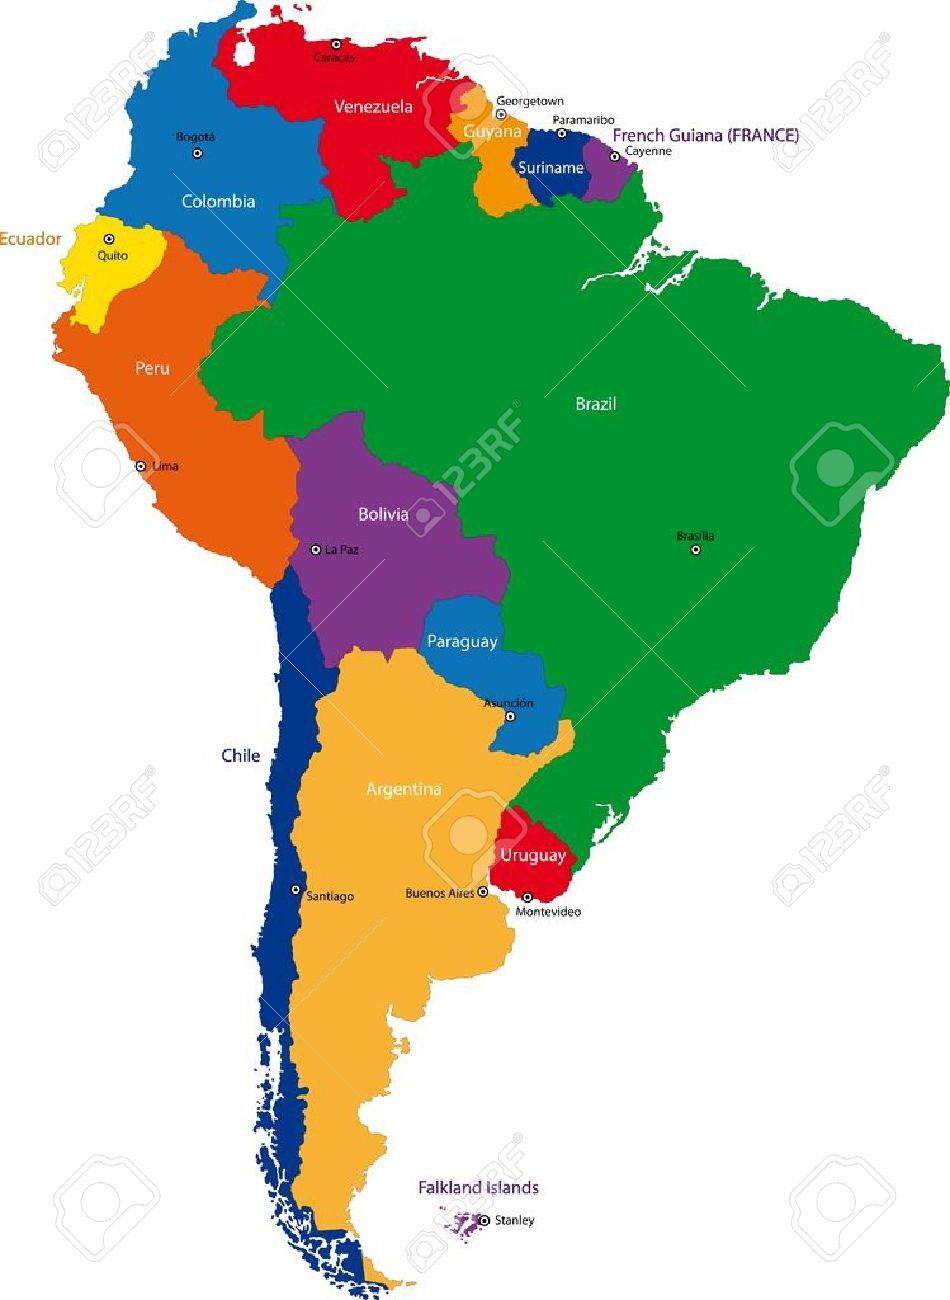 Colorful South America Map With Countries And Capital Cities - Bolivia cities map